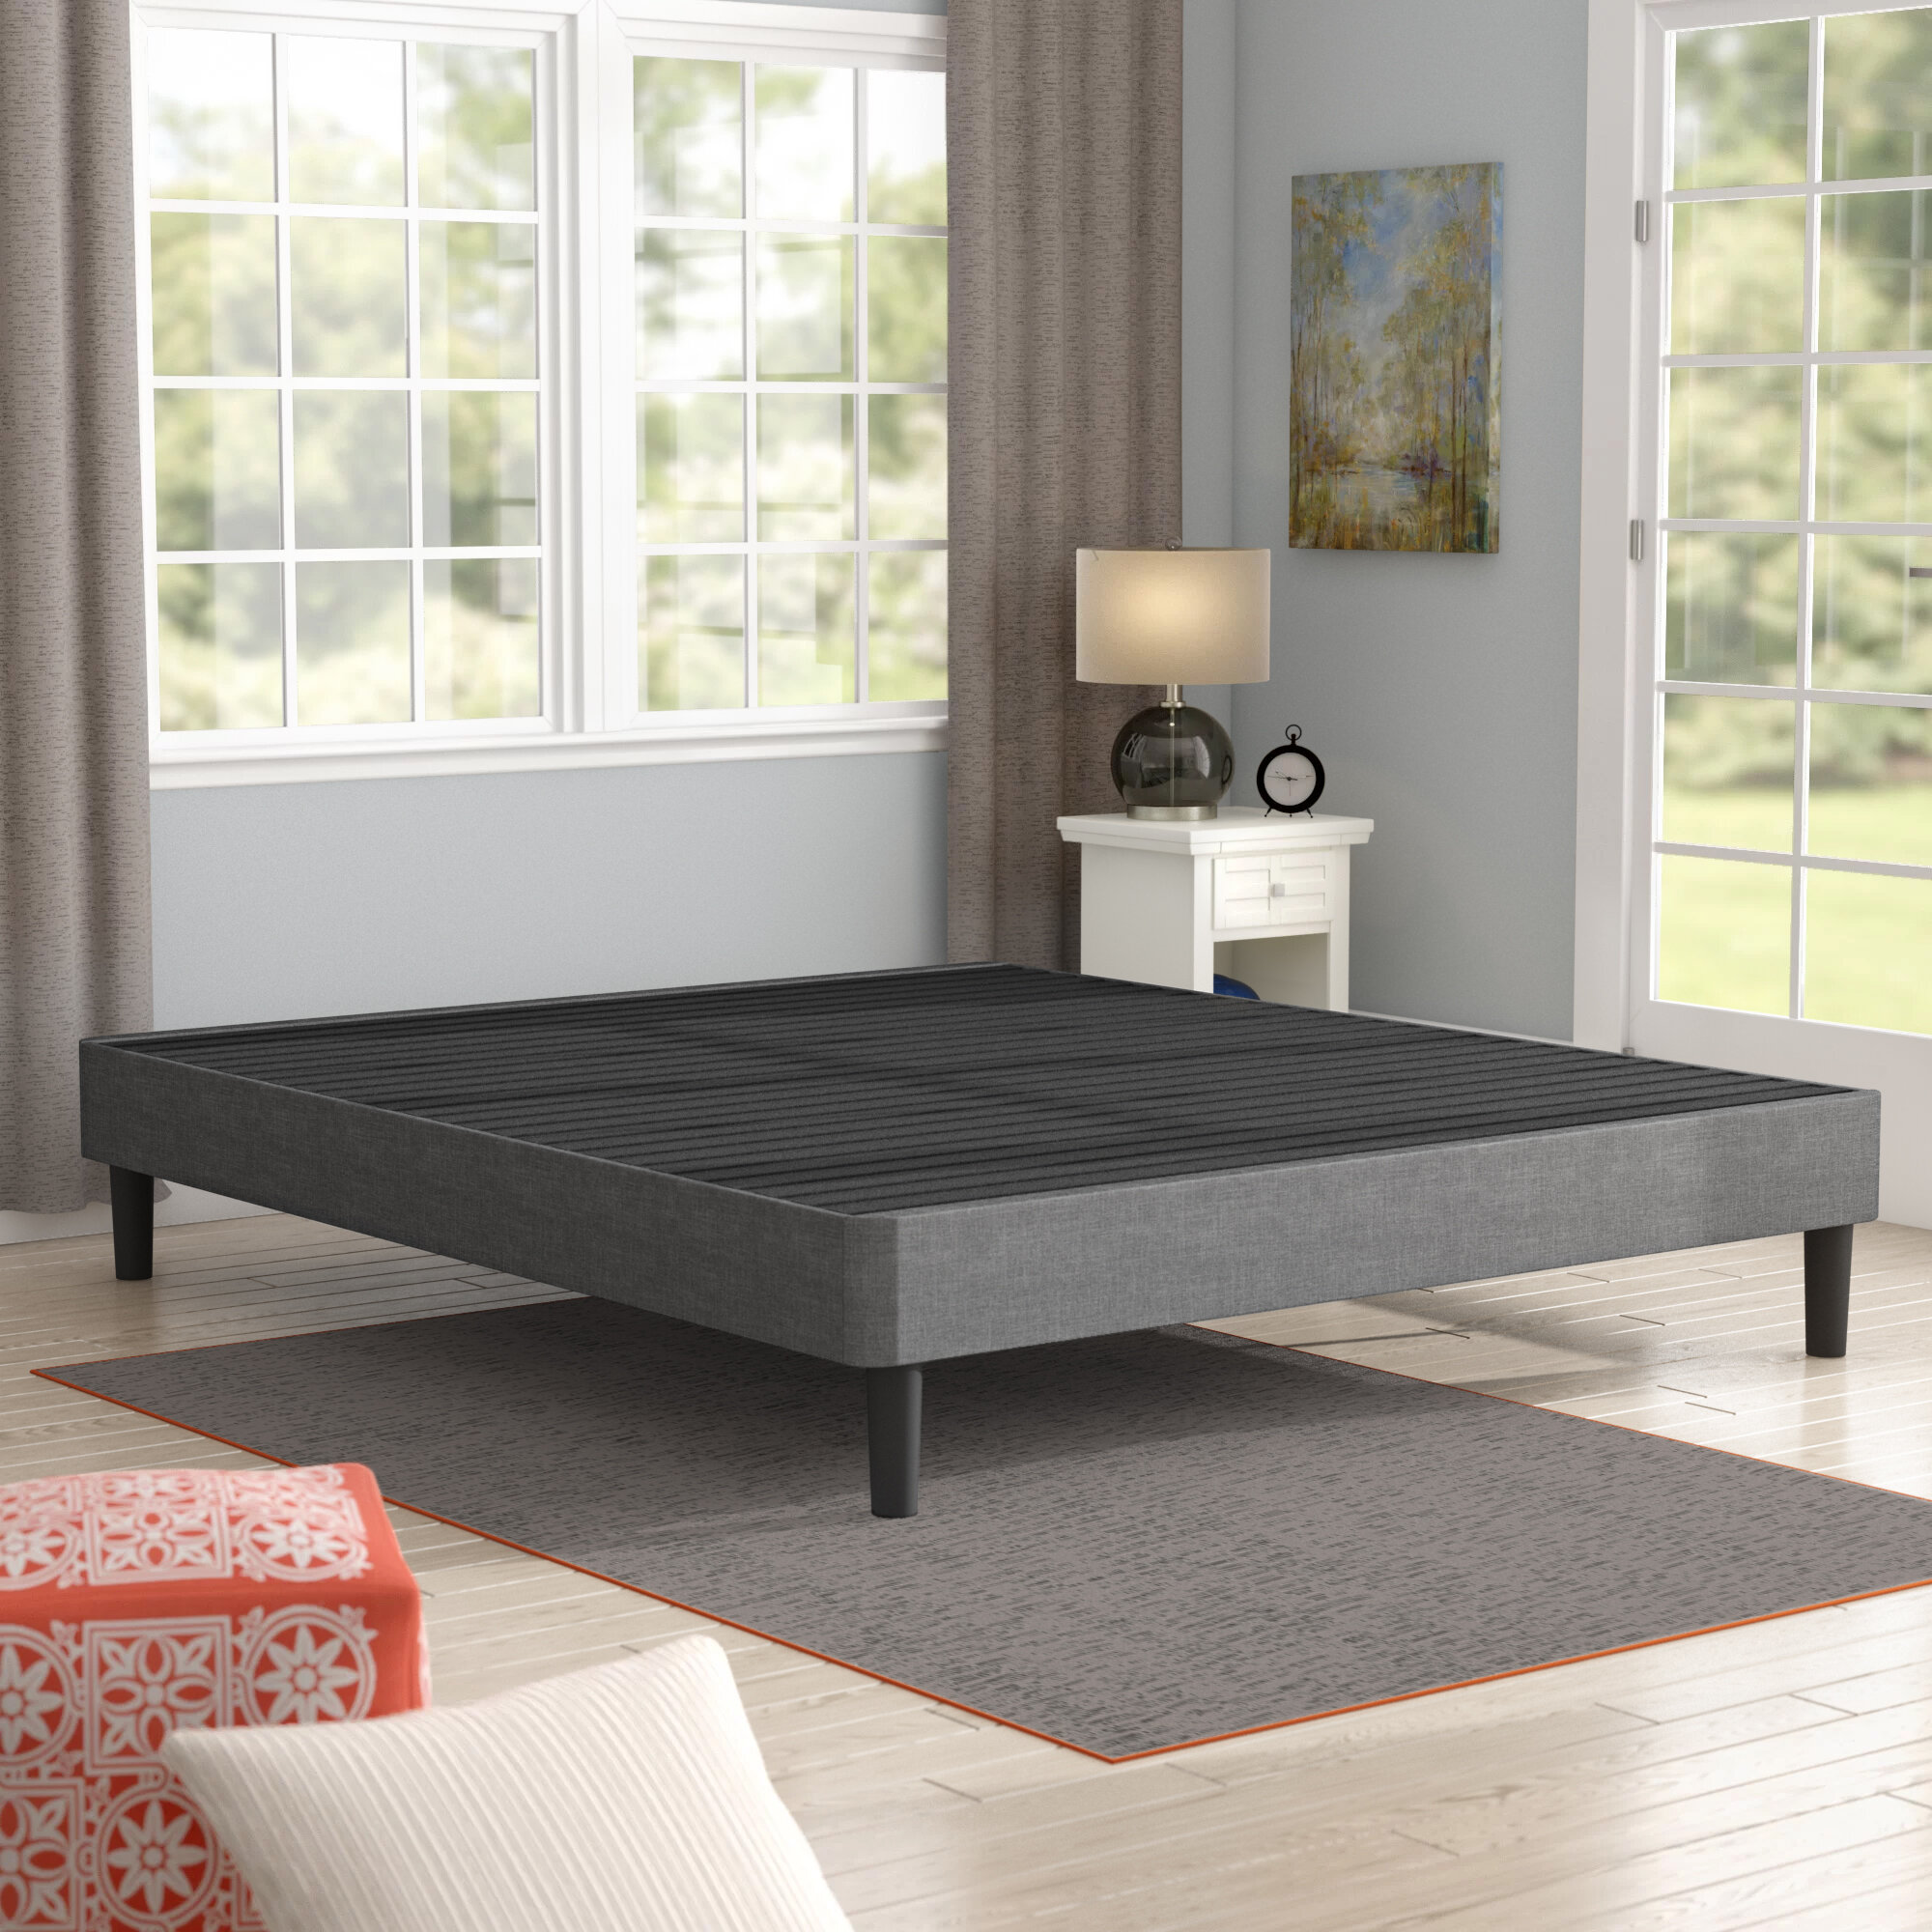 Alwyn Home Ryland Platform Bed Frame & Reviews | Wayfair